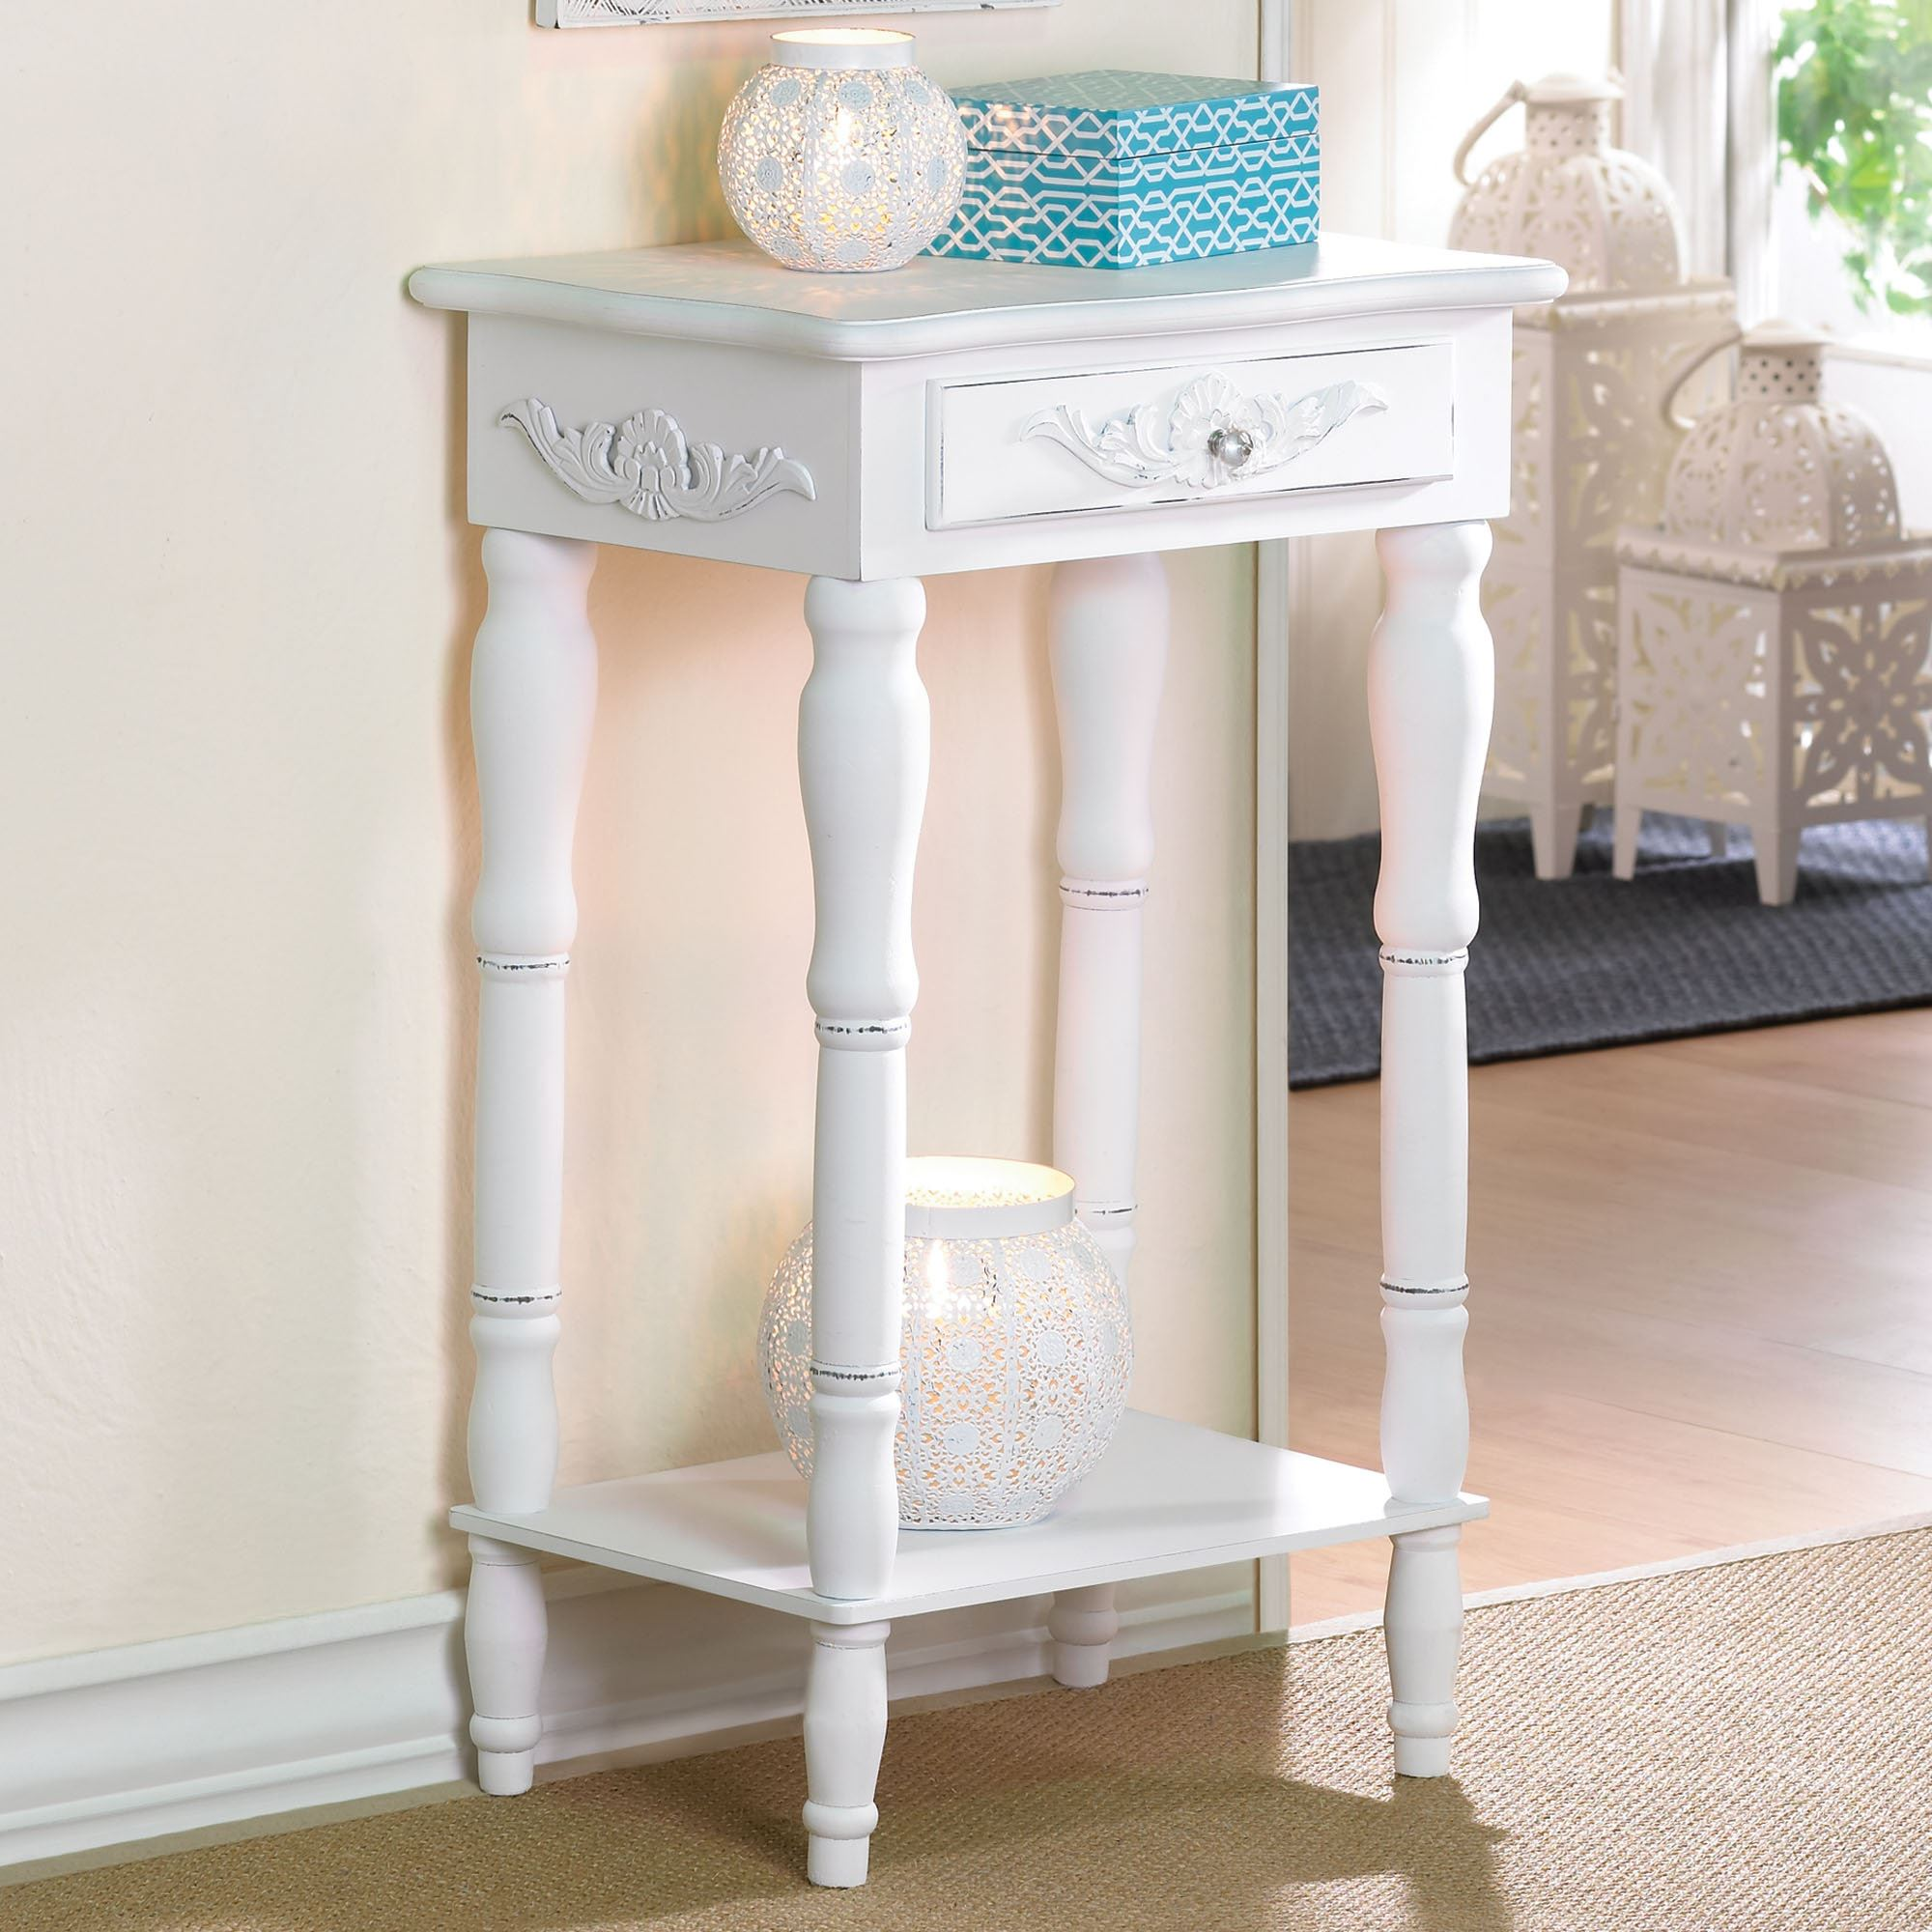 cosenza antique white accent table with drawer touch zoom battery operated indoor lamps vanity furniture gold mirrored baby changing pad ceramic drum wine stoppers target mint